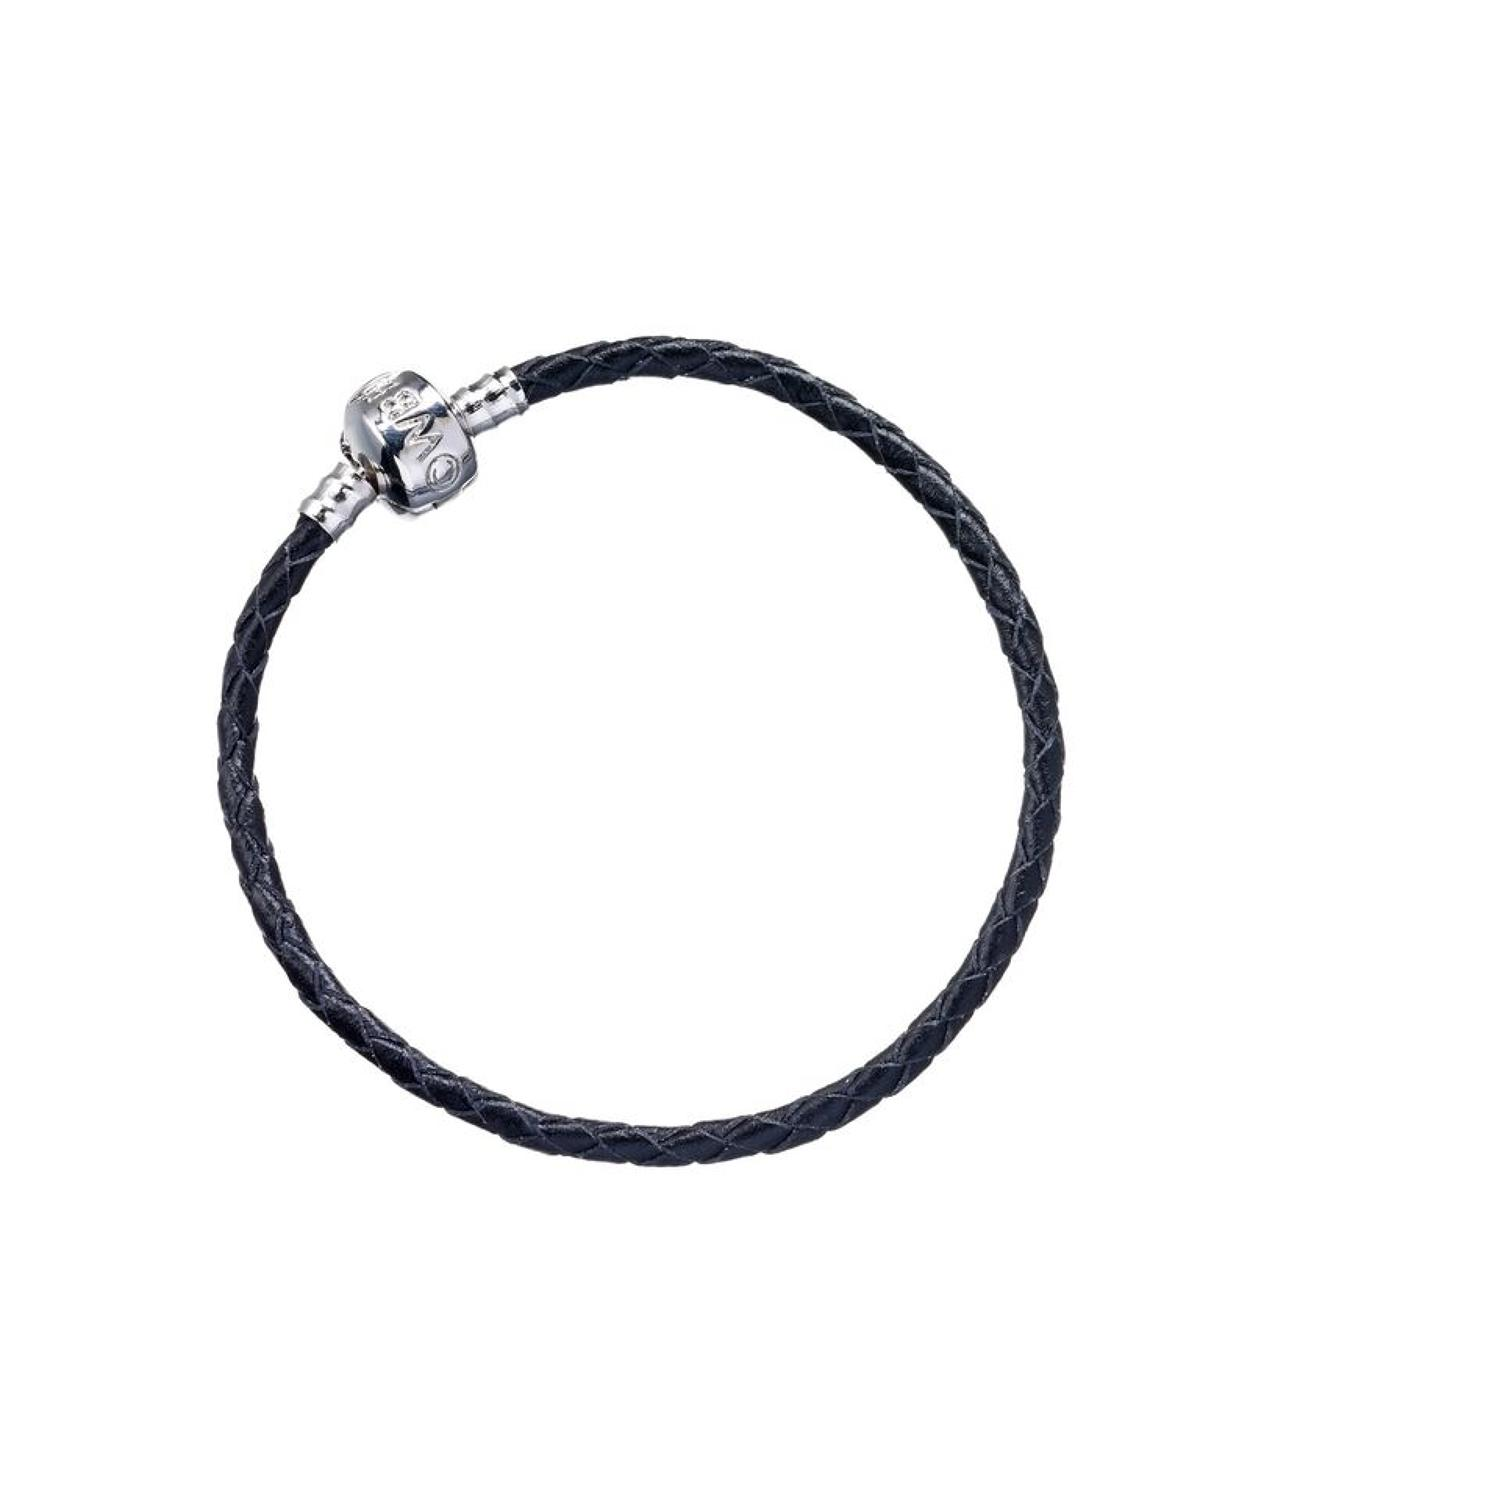 Black Leather Charm Bracelet in Harry Potter